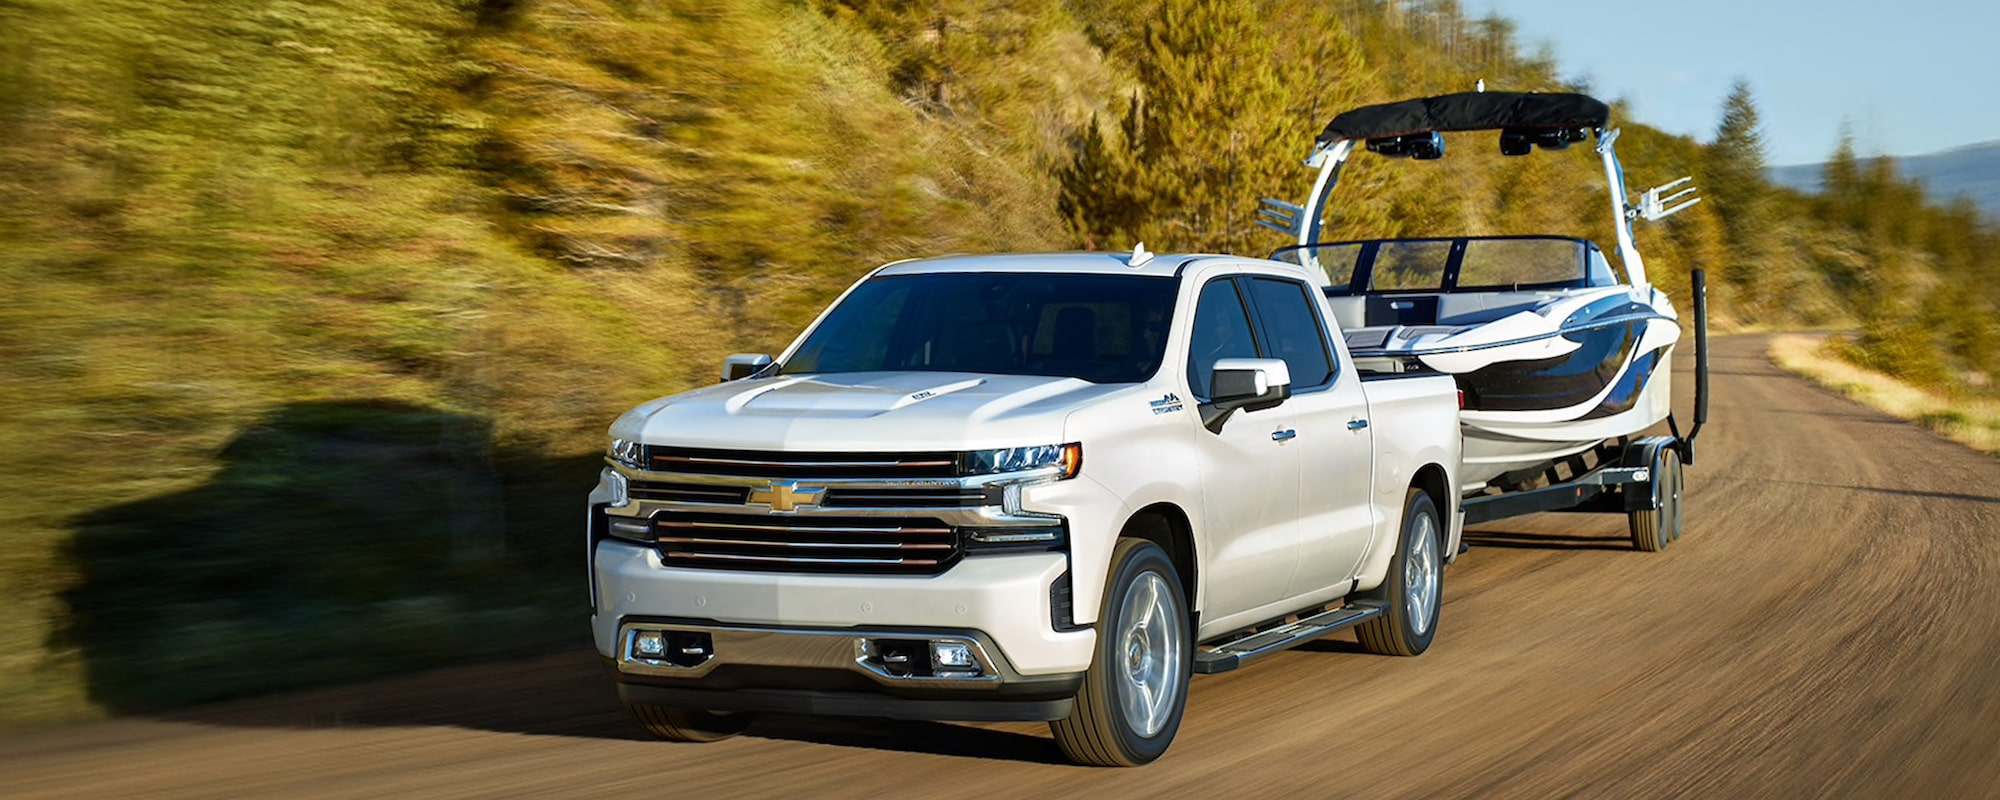 medium resolution of chevrolet trailering and towing guide